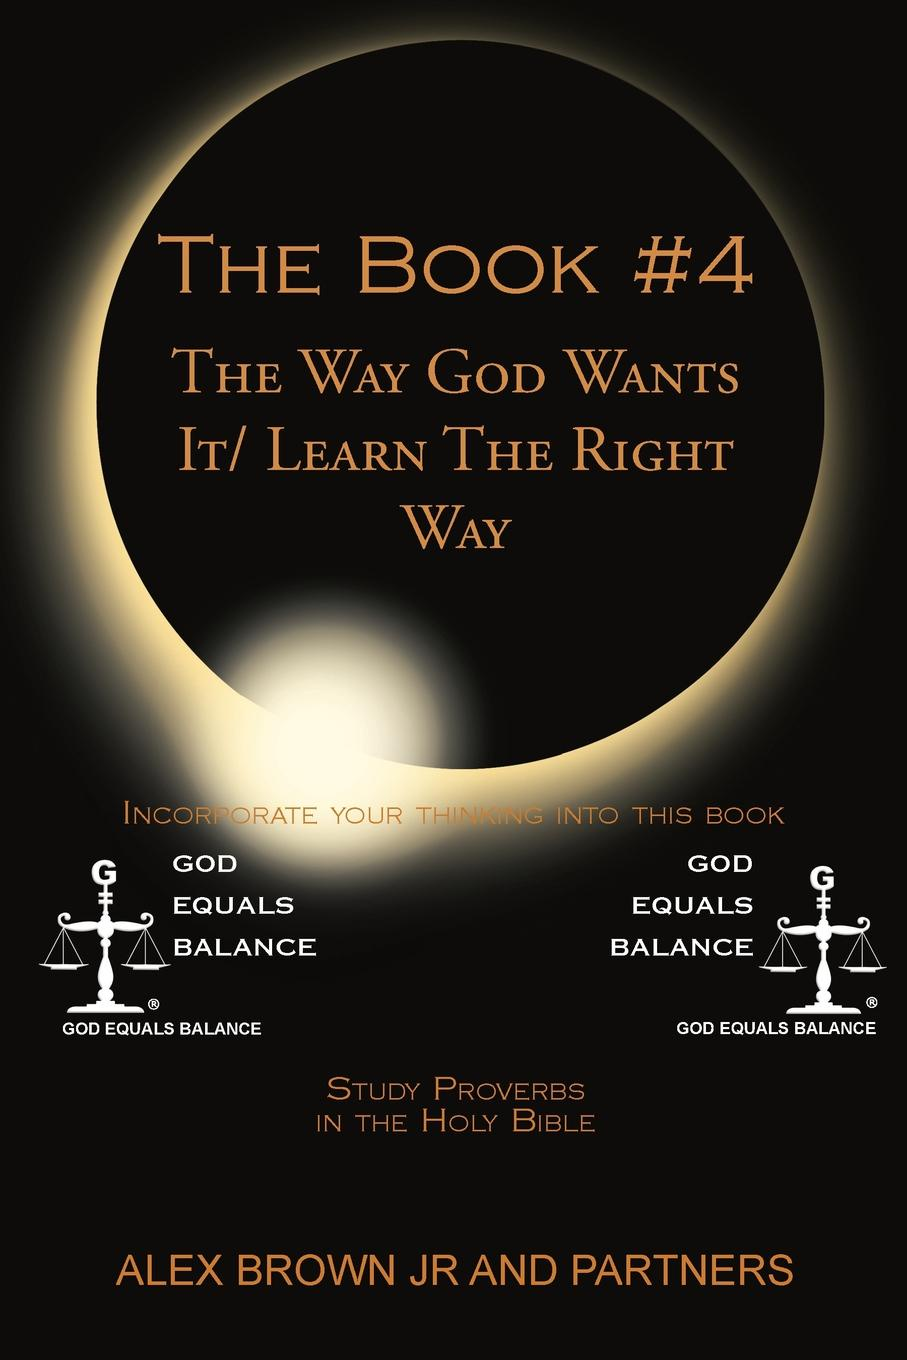 Alex Brown Jr, Partners The Book # 4 The Way God Wants It/ Learn The Right Way. Study Proverbs in the Holy Bible the holy bible